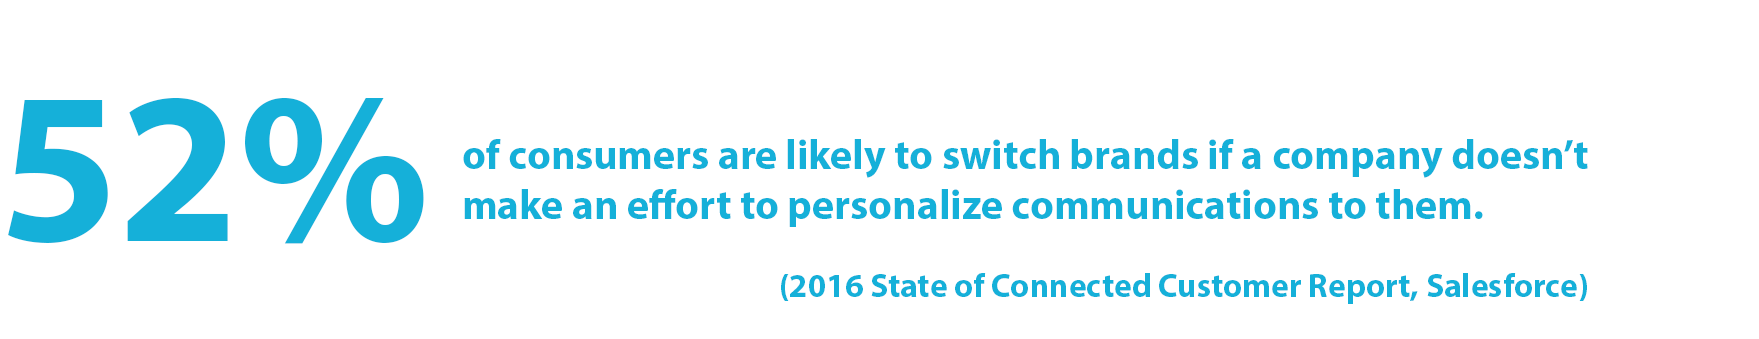 Statistic: 52% of consumers are likely to switch brands if a company doesn't make an effort to personalize communications to them. (2016 State of Connected Customer Report, Salesforce)